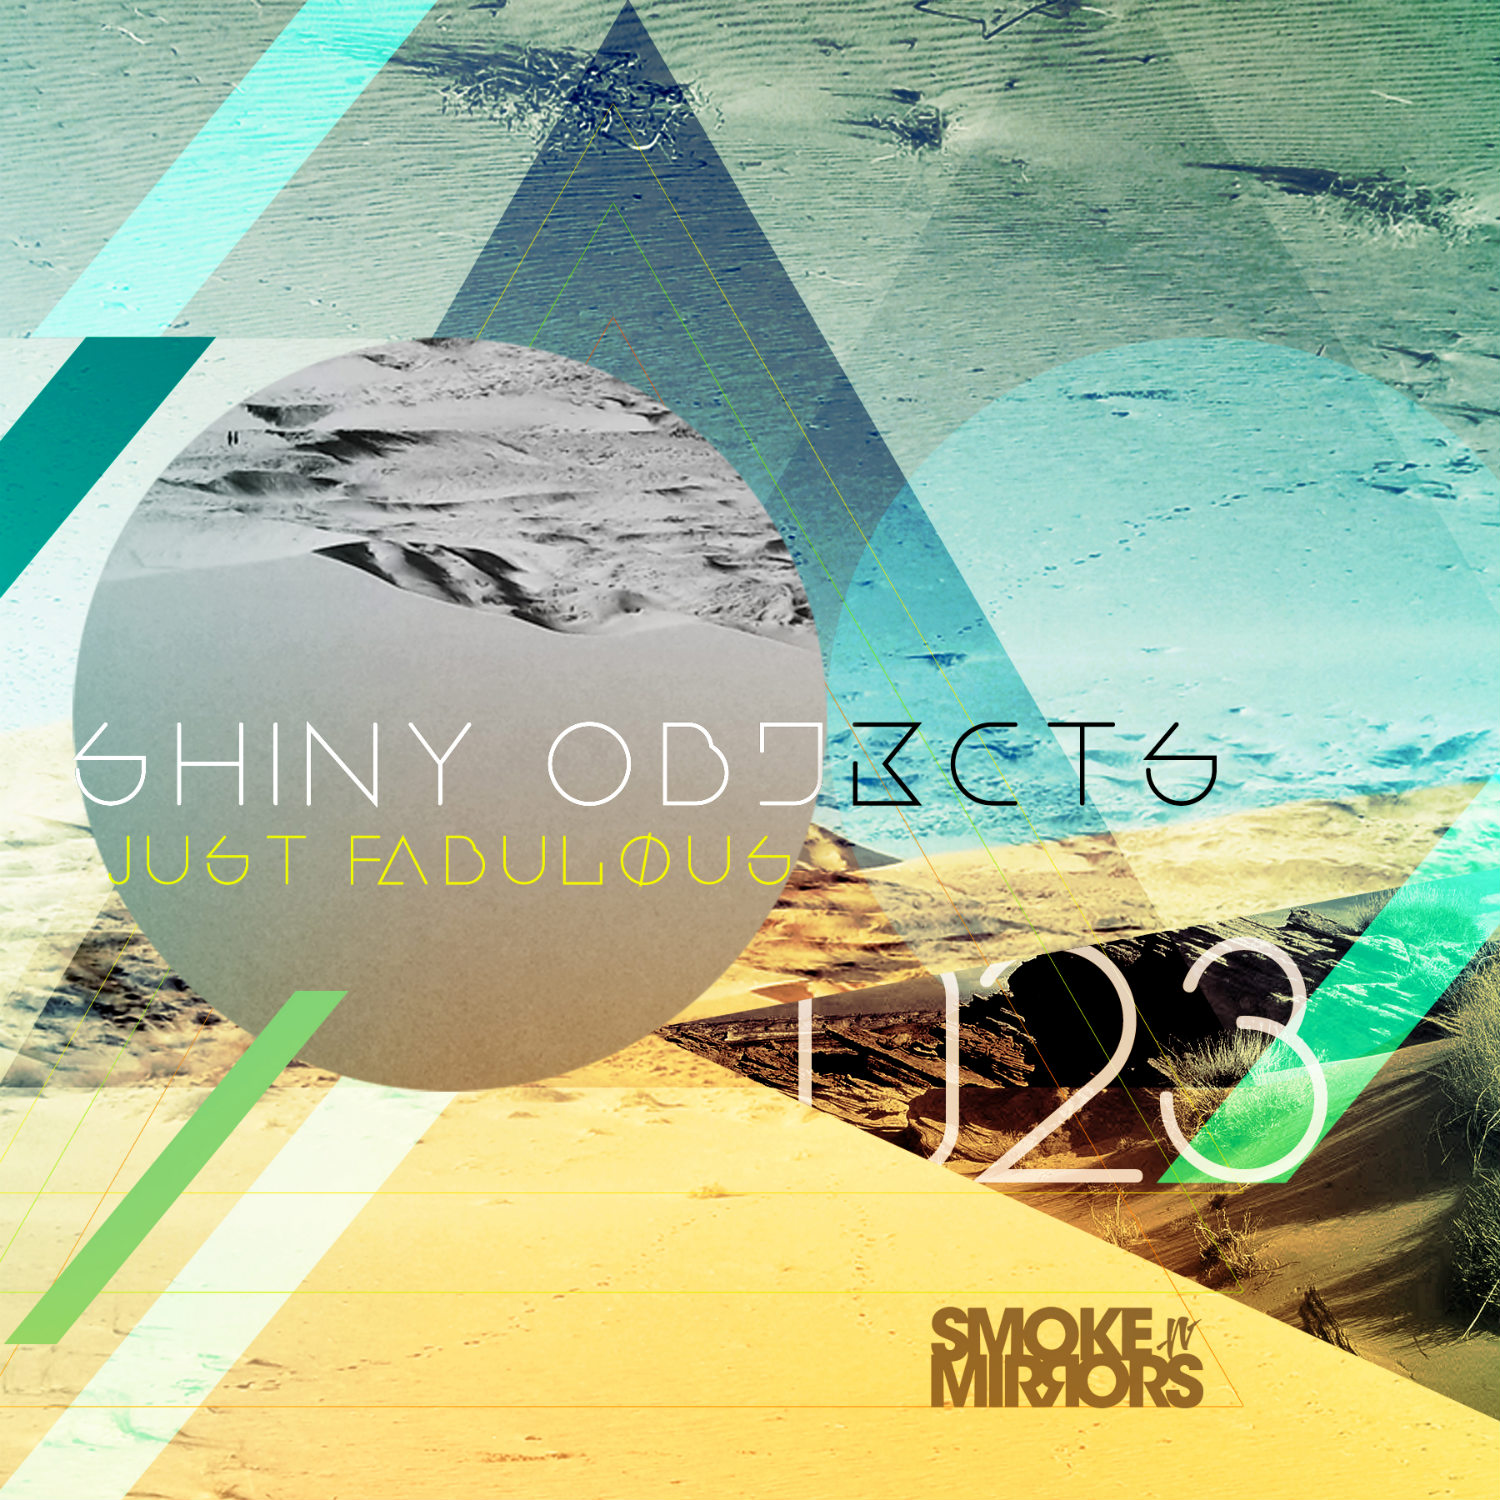 Shiny Objects - Just Fabulous